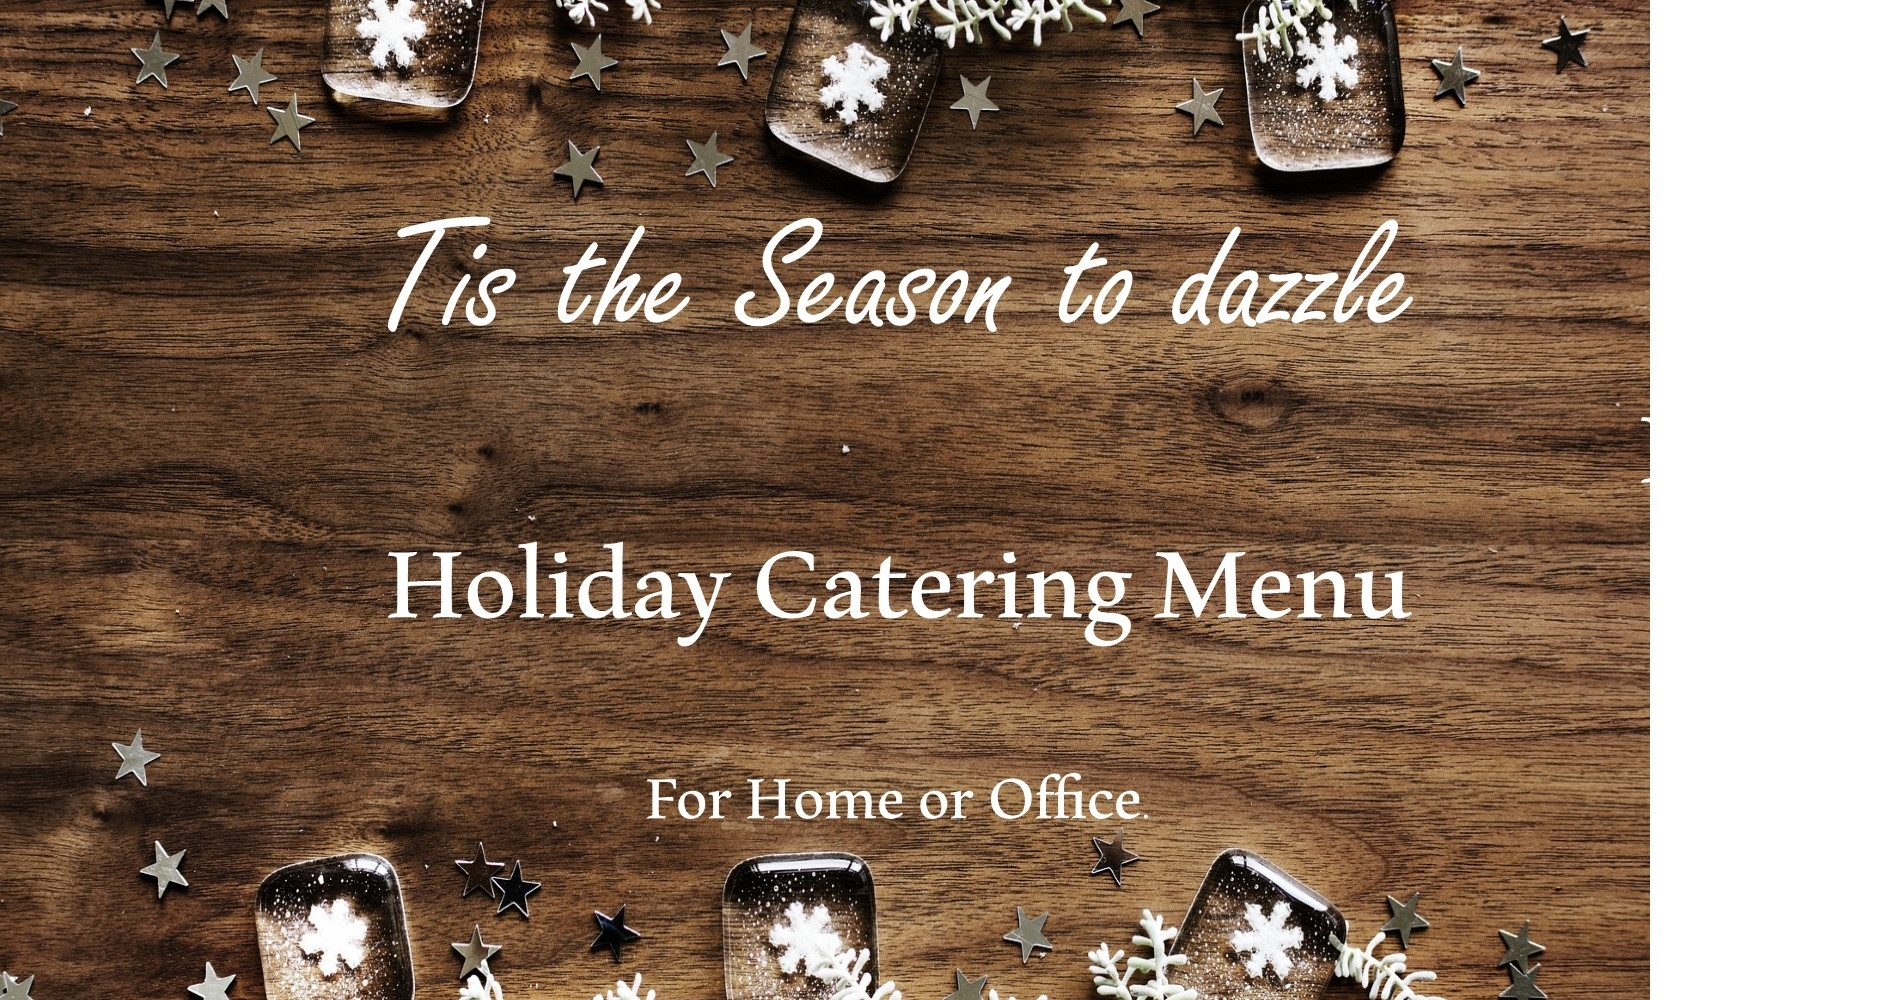 https://cozycaterers.com/wp-content/uploads/2018/10/hOLIDAY-mENU.png-1900x1000.jpg